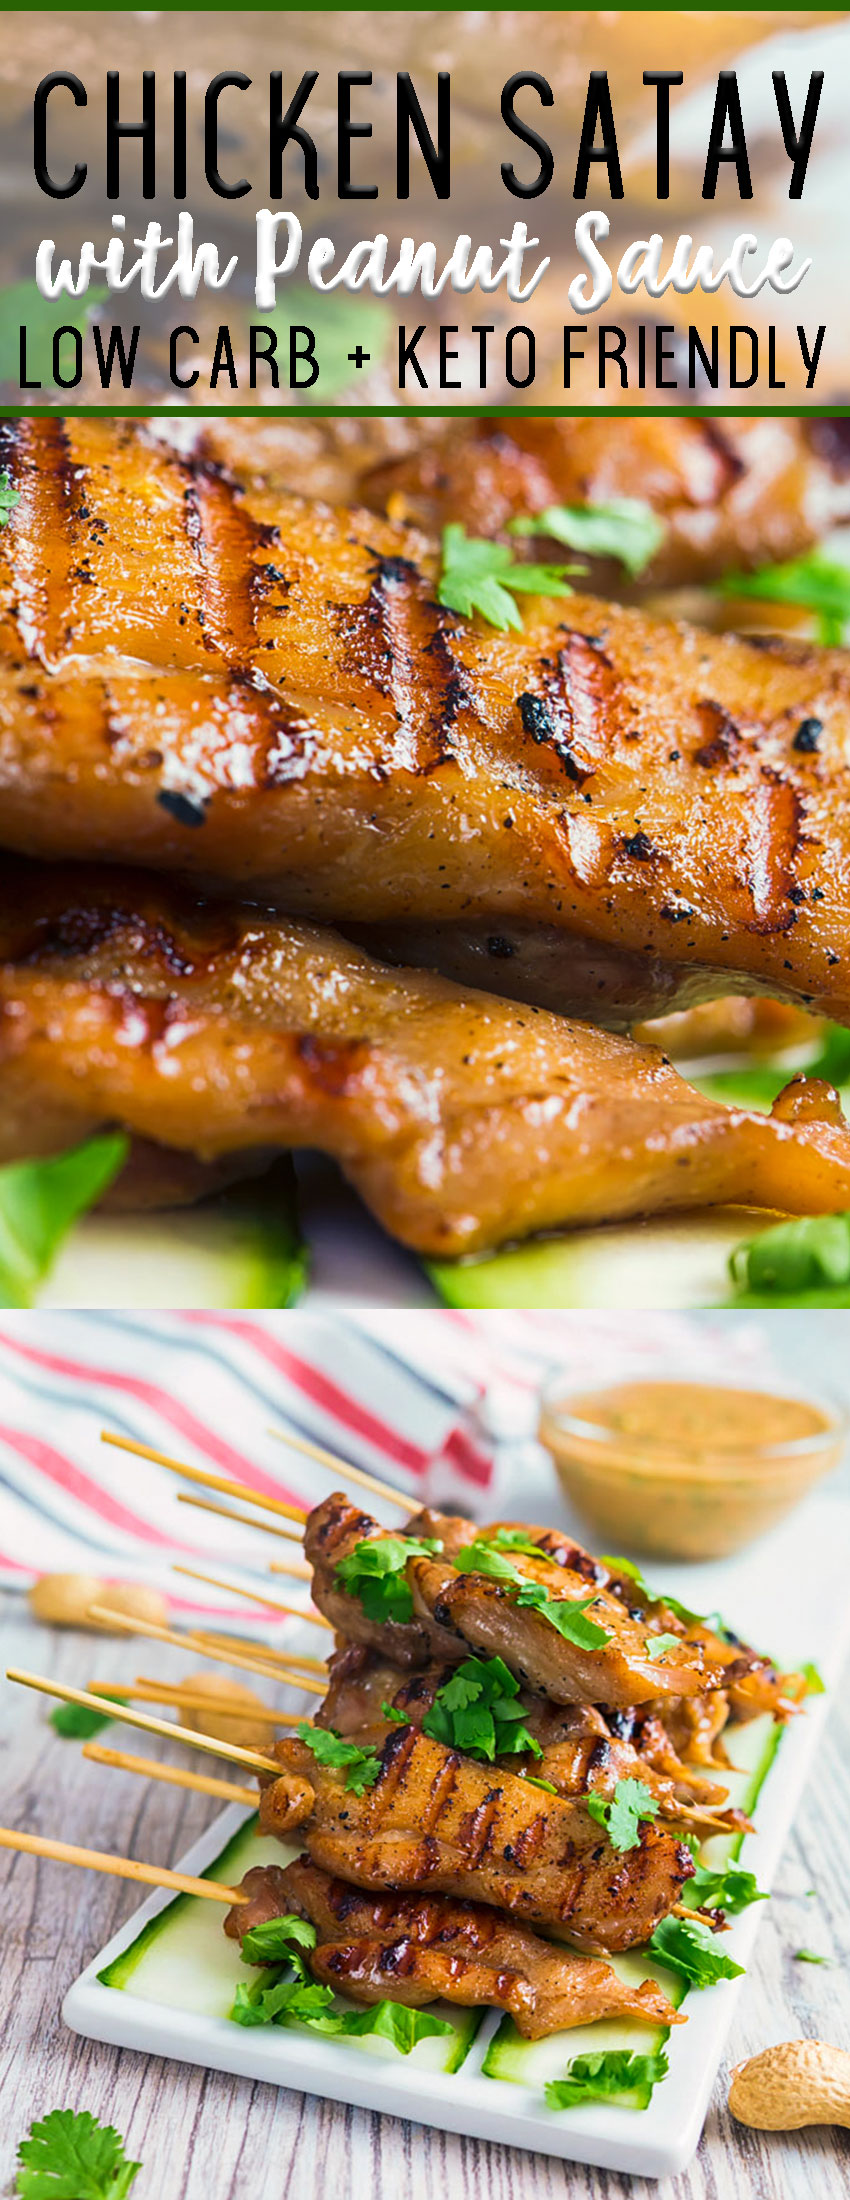 Chicken satay low carb keto friendly